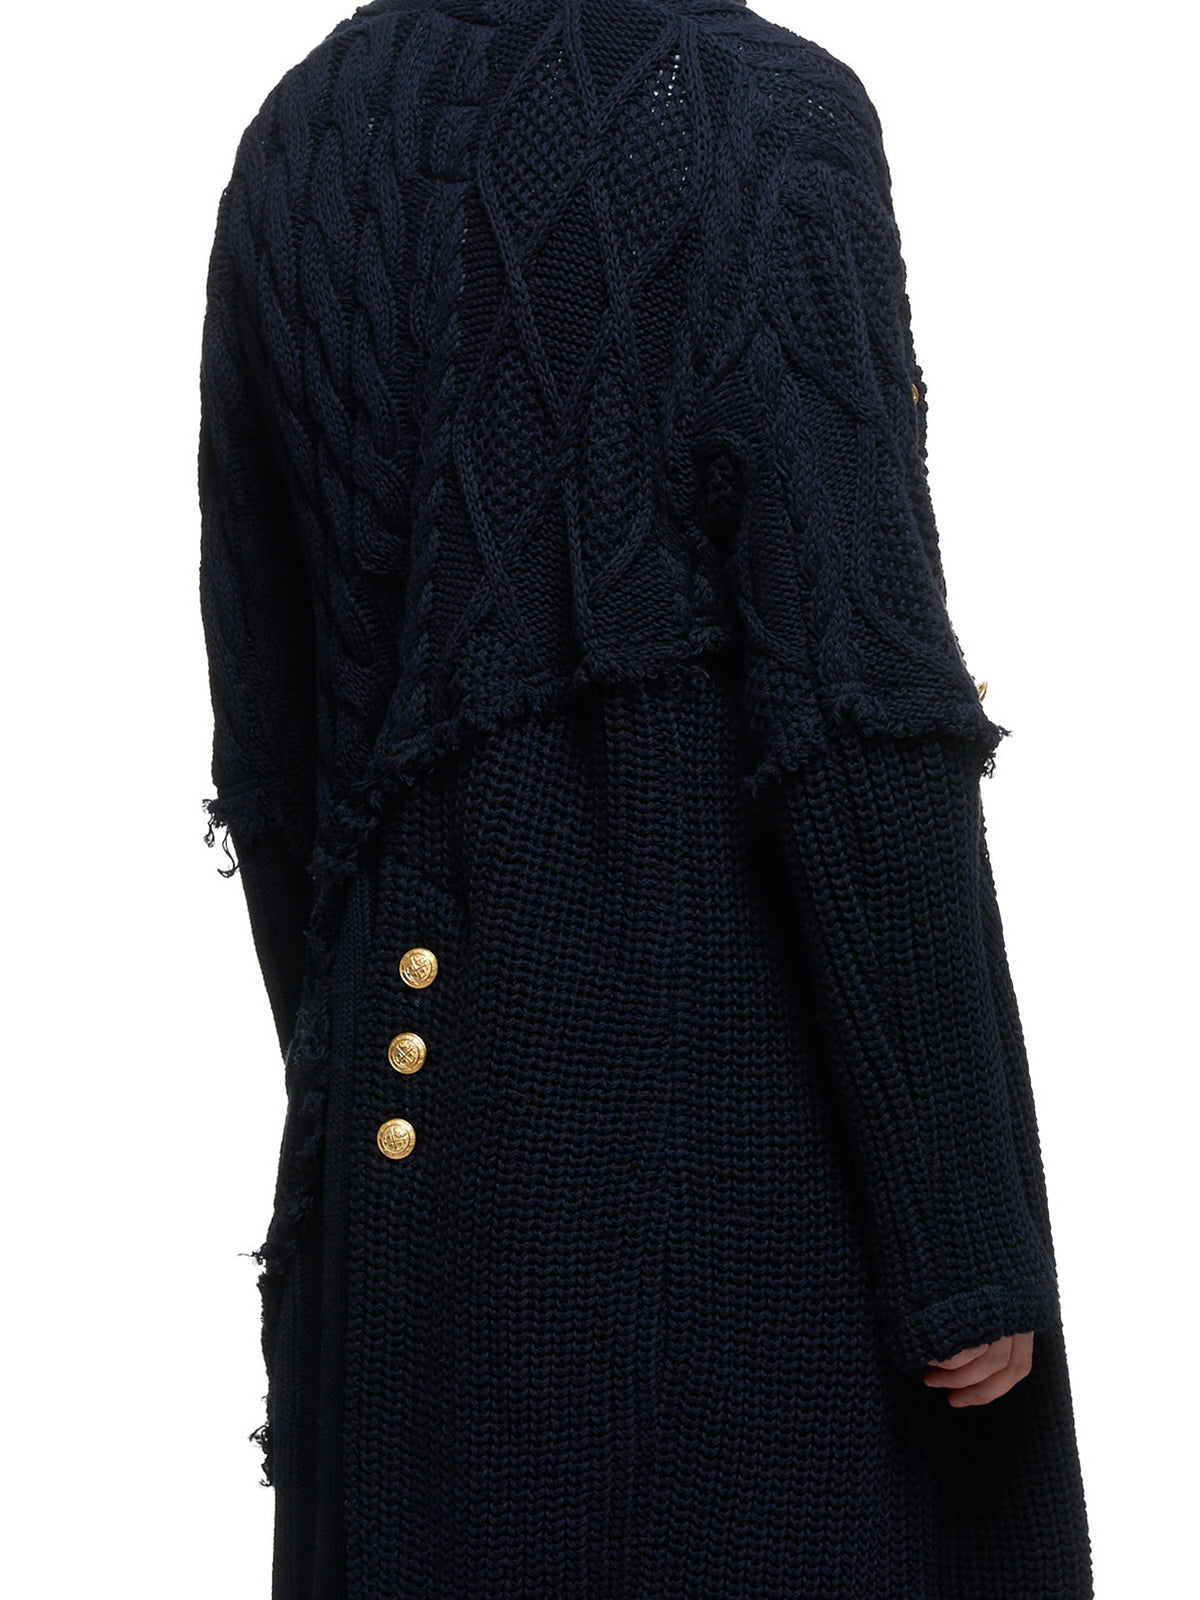 Knitted Oversized Cardigan (P20P1450-NAVY)